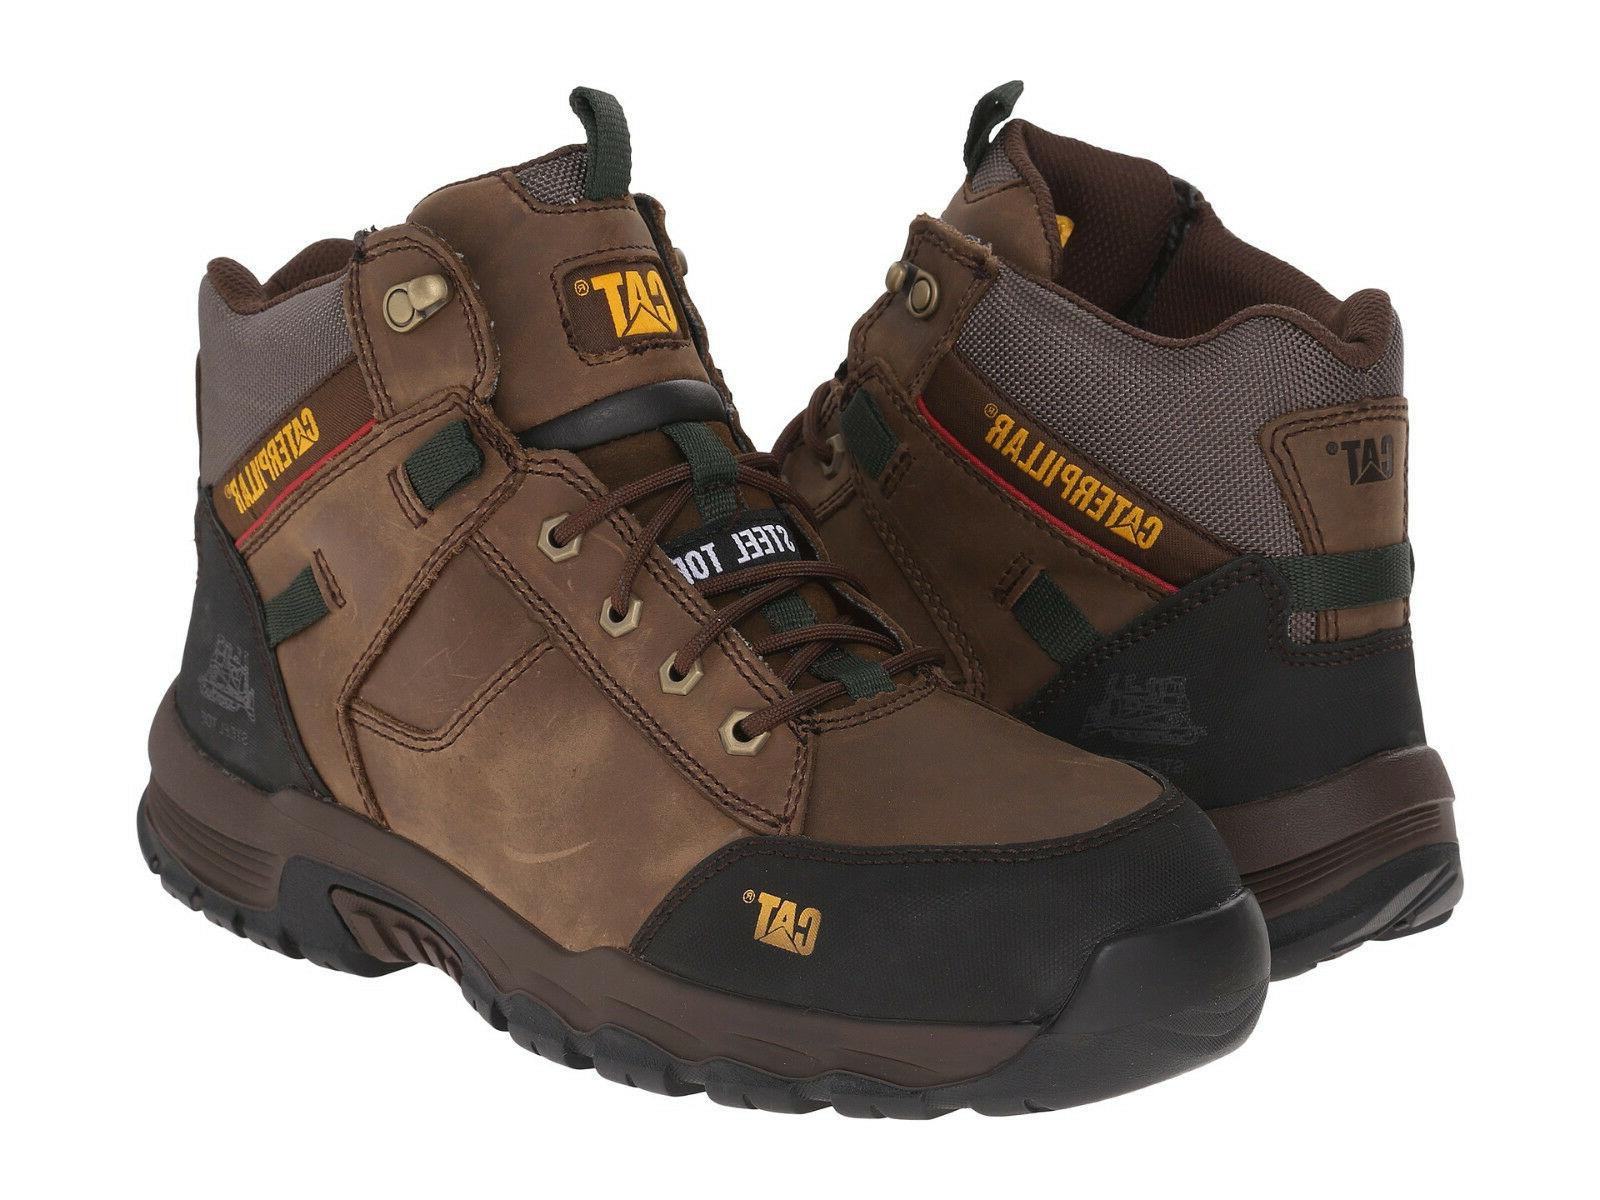 Men Caterpillar Safeway Mid Steel Toe Work Boot P90623 CUB 1